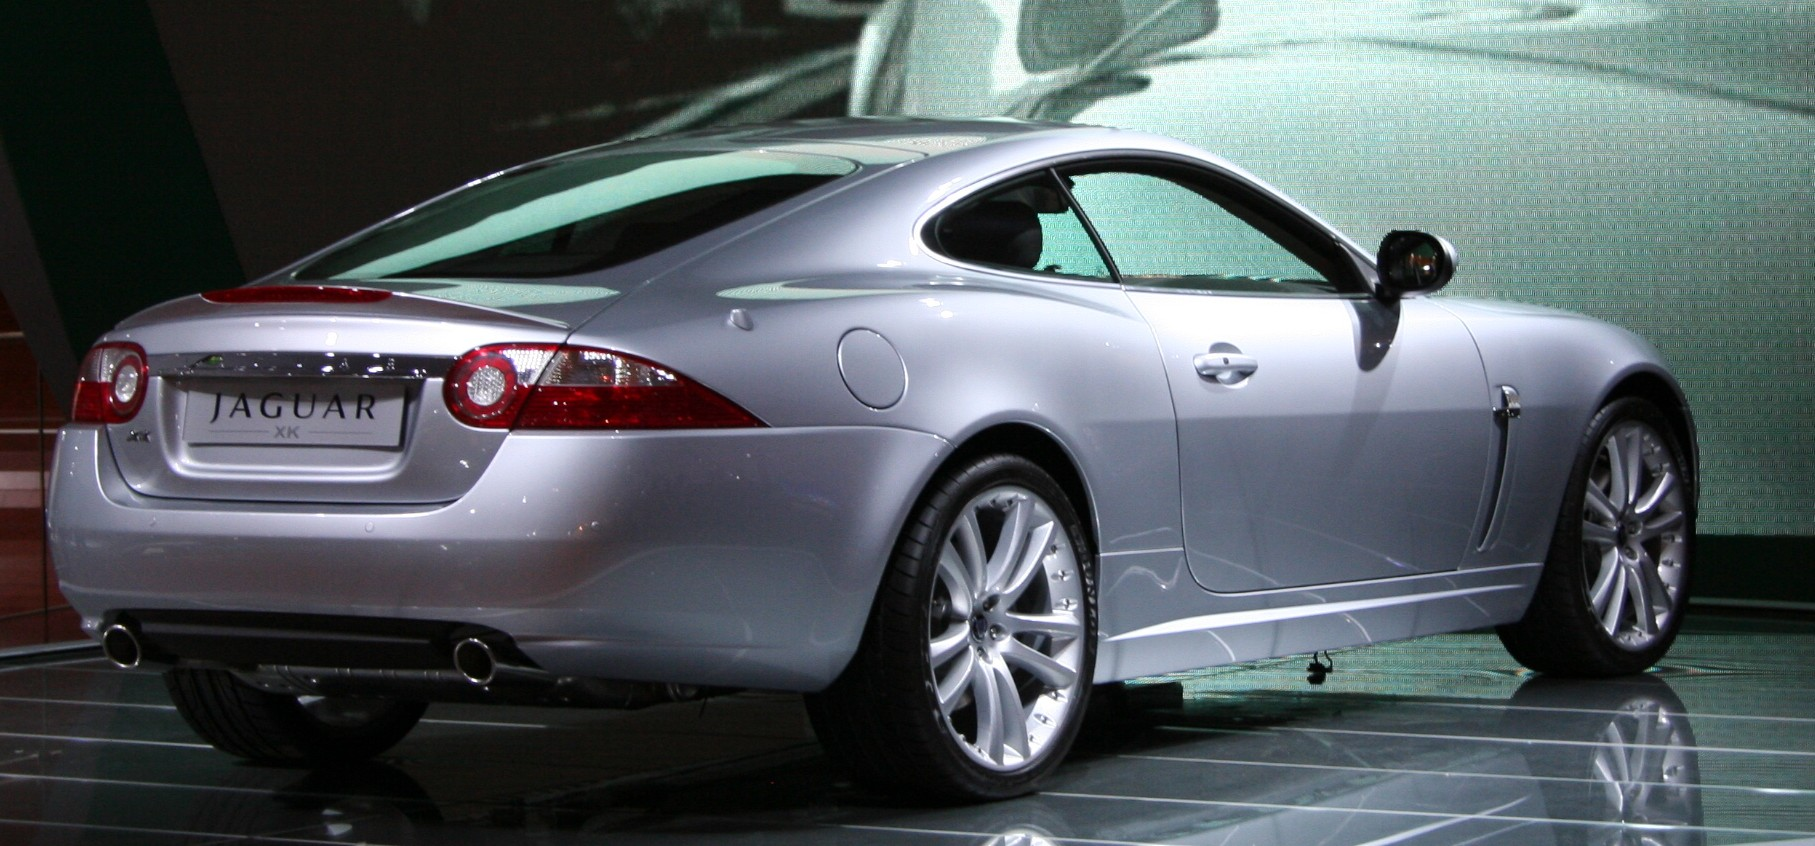 Jaguar xk photo - 1